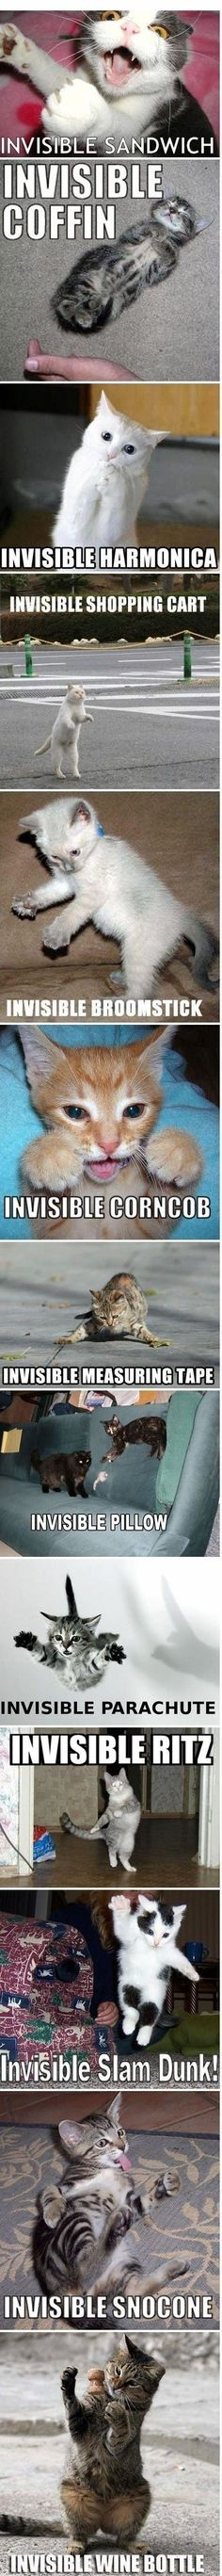 Invisible cat. Hahaha